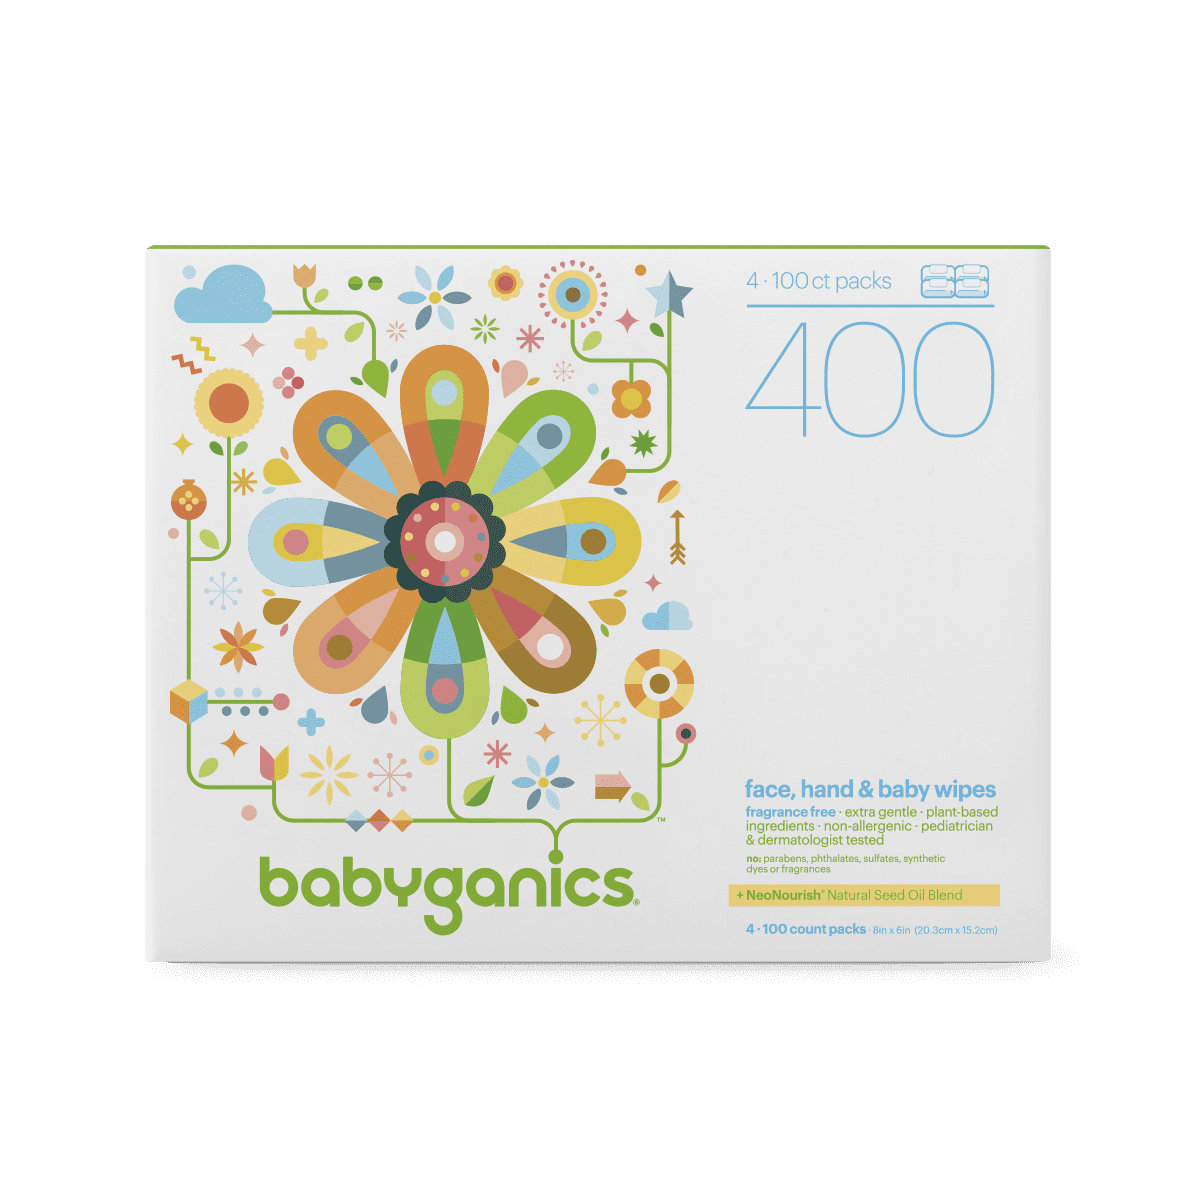 Babyganics Face, Hand & Baby Wipes, Fragrance Free (400 count)